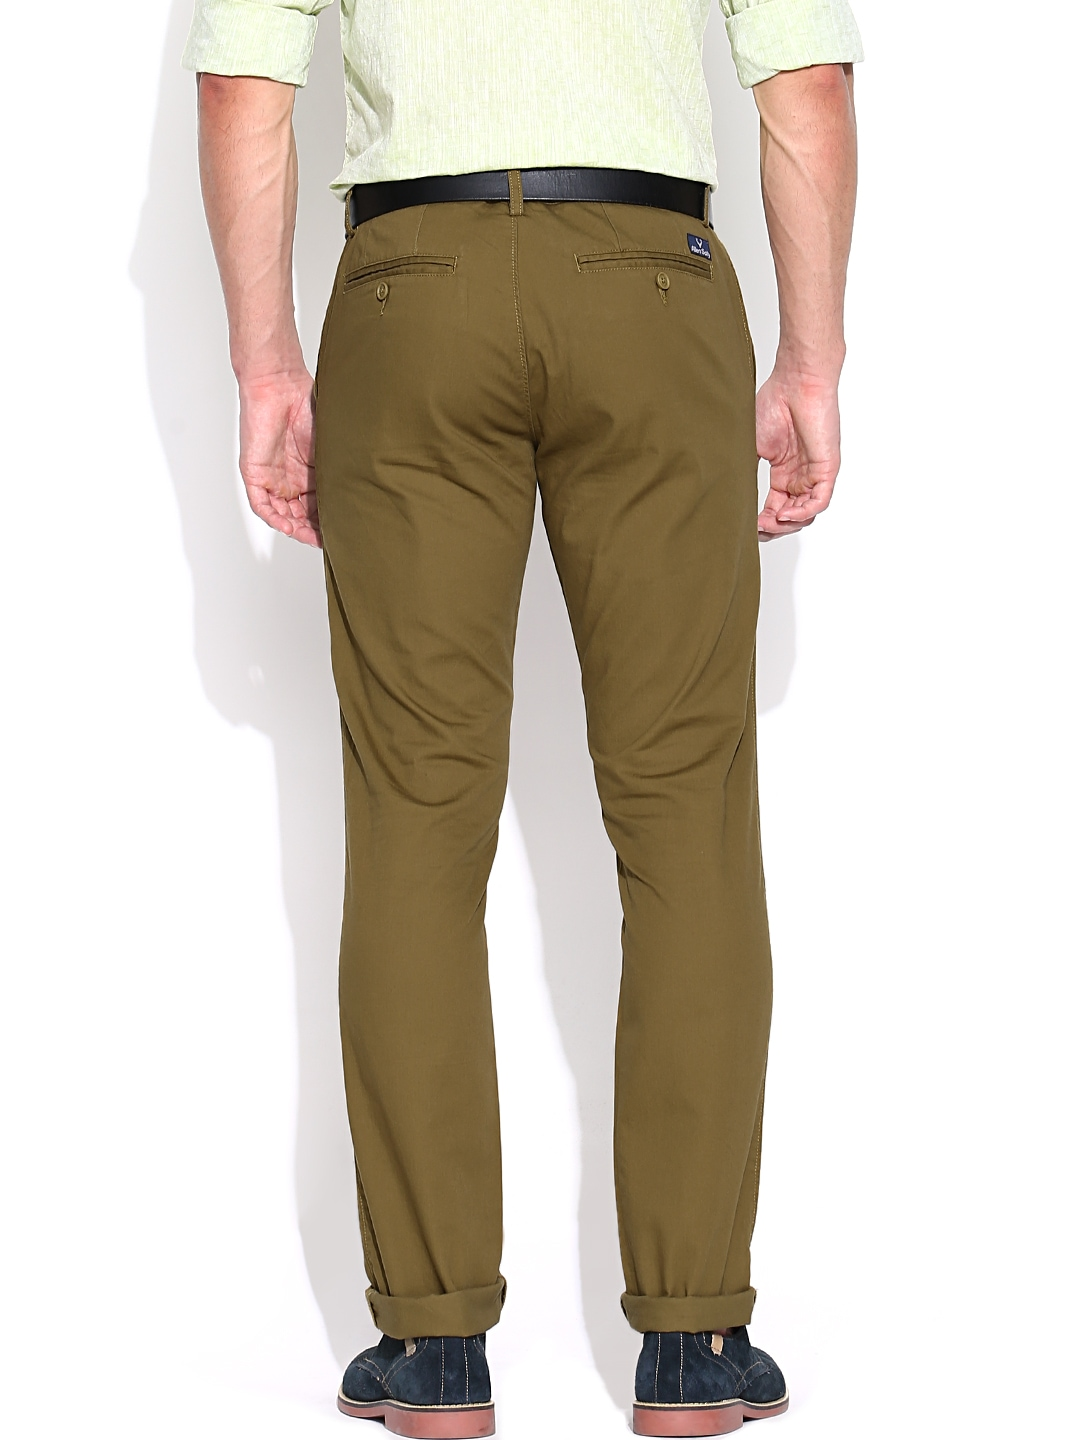 Details about Men's Smart Slim Fit Trousers Work Formal Wool Office PantsSeller Rating: % positive.